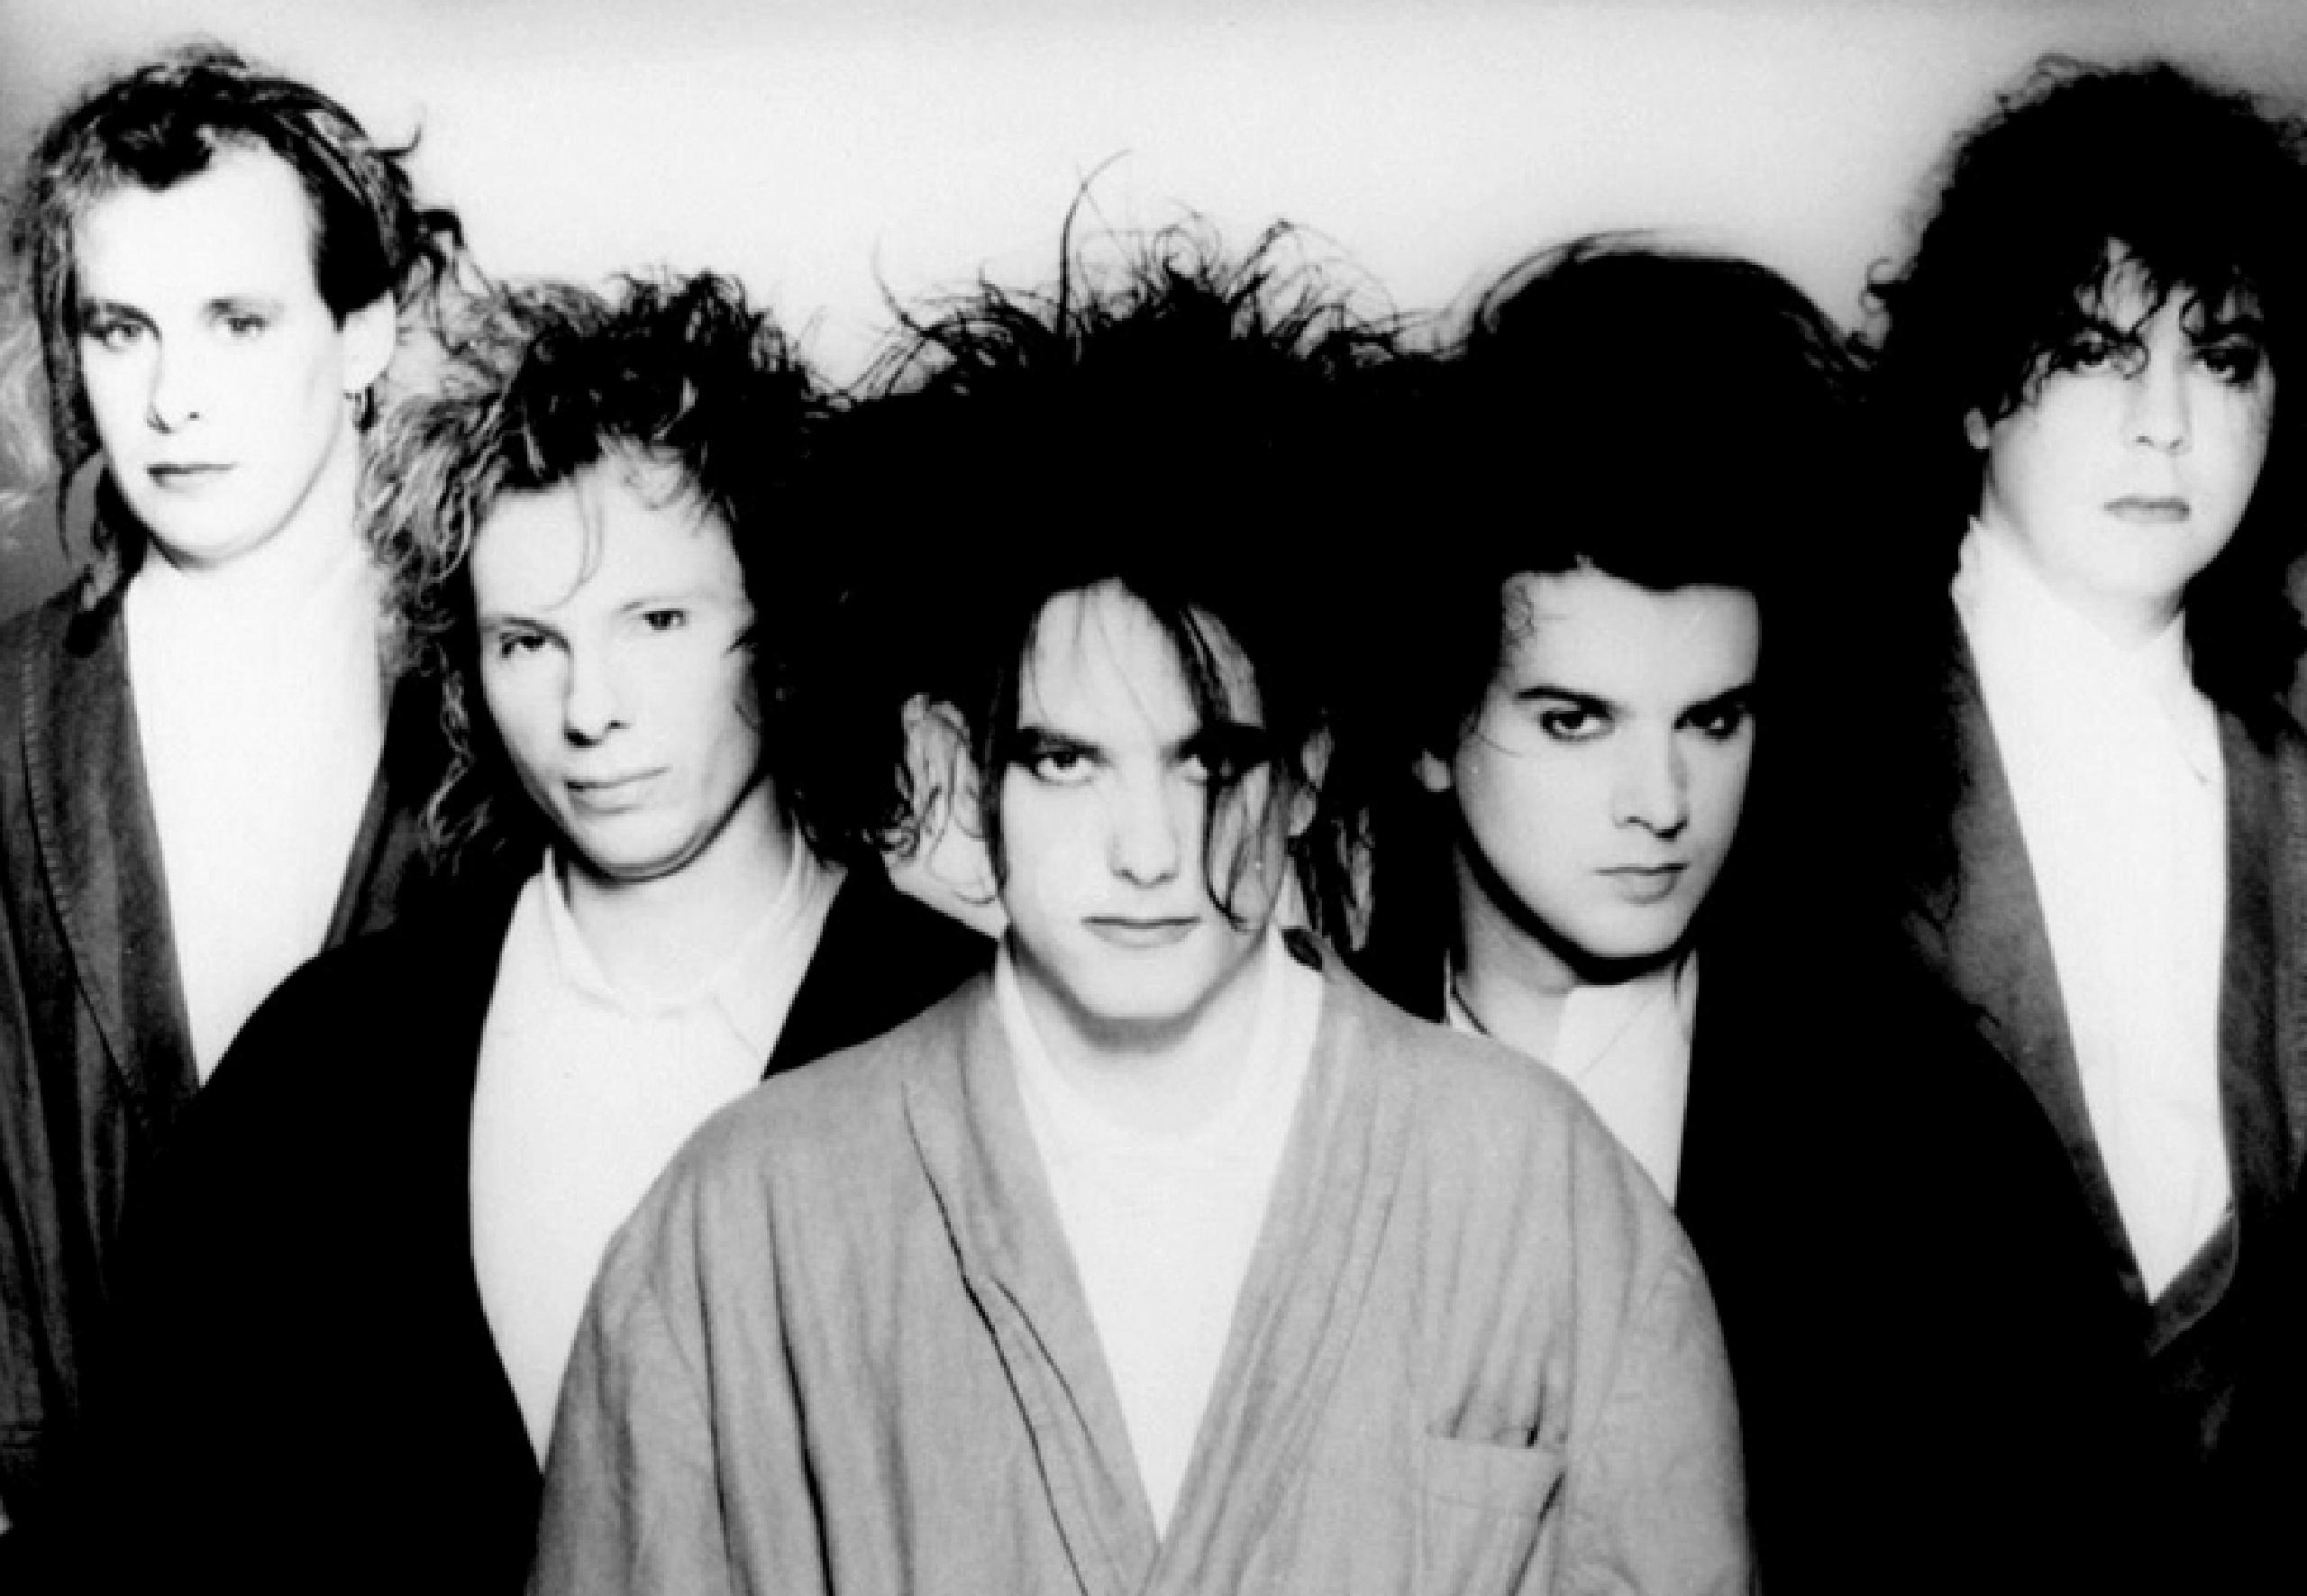 Robert Smith, Cure, Oggi nel Rock, 21 aprile, Dark, Classic Rock, Stone Music